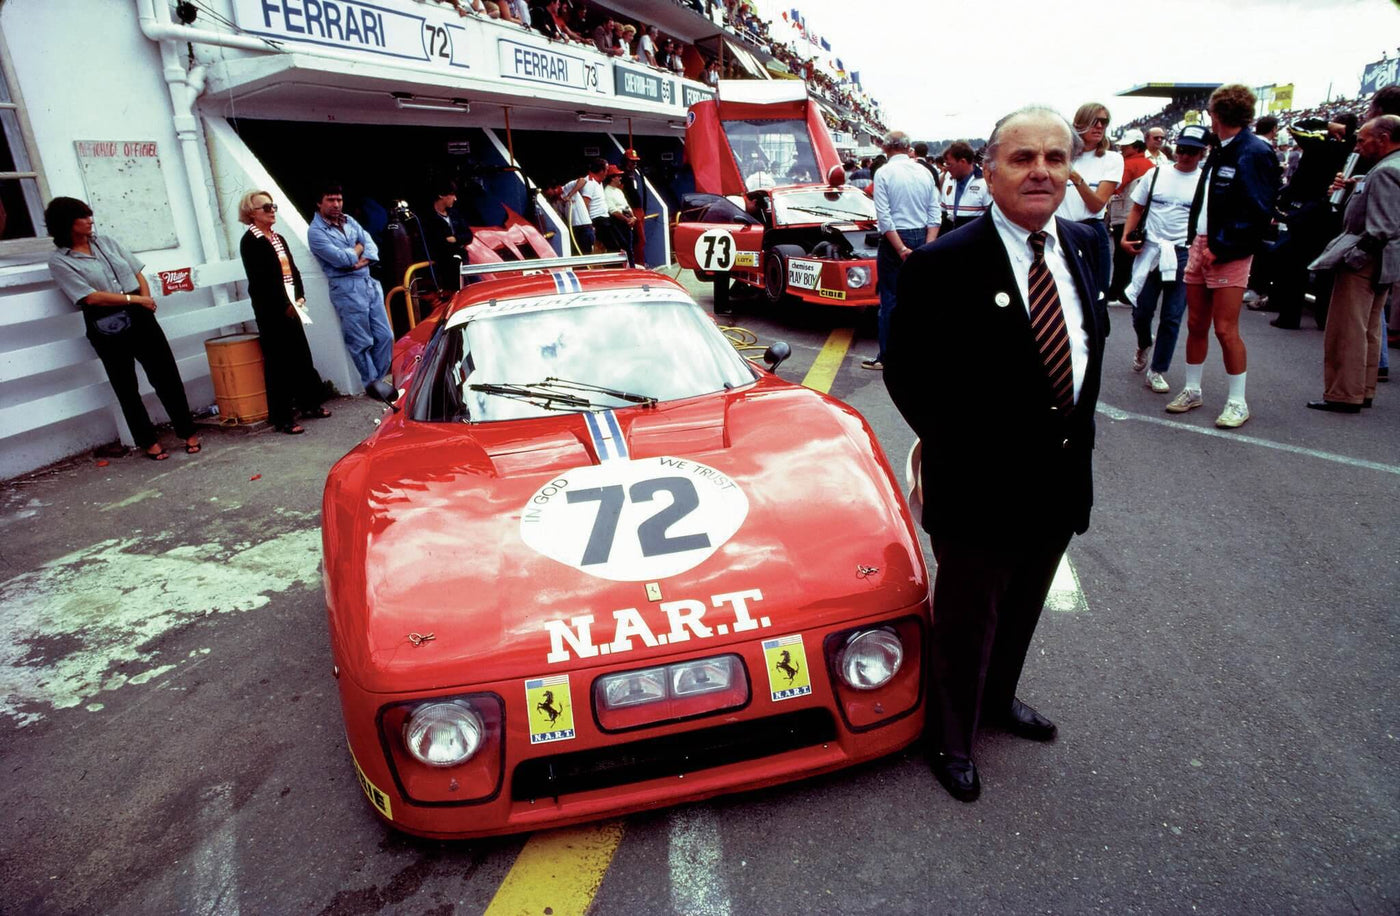 Meet The Italian Racer Who Made Ferrari Big In The States